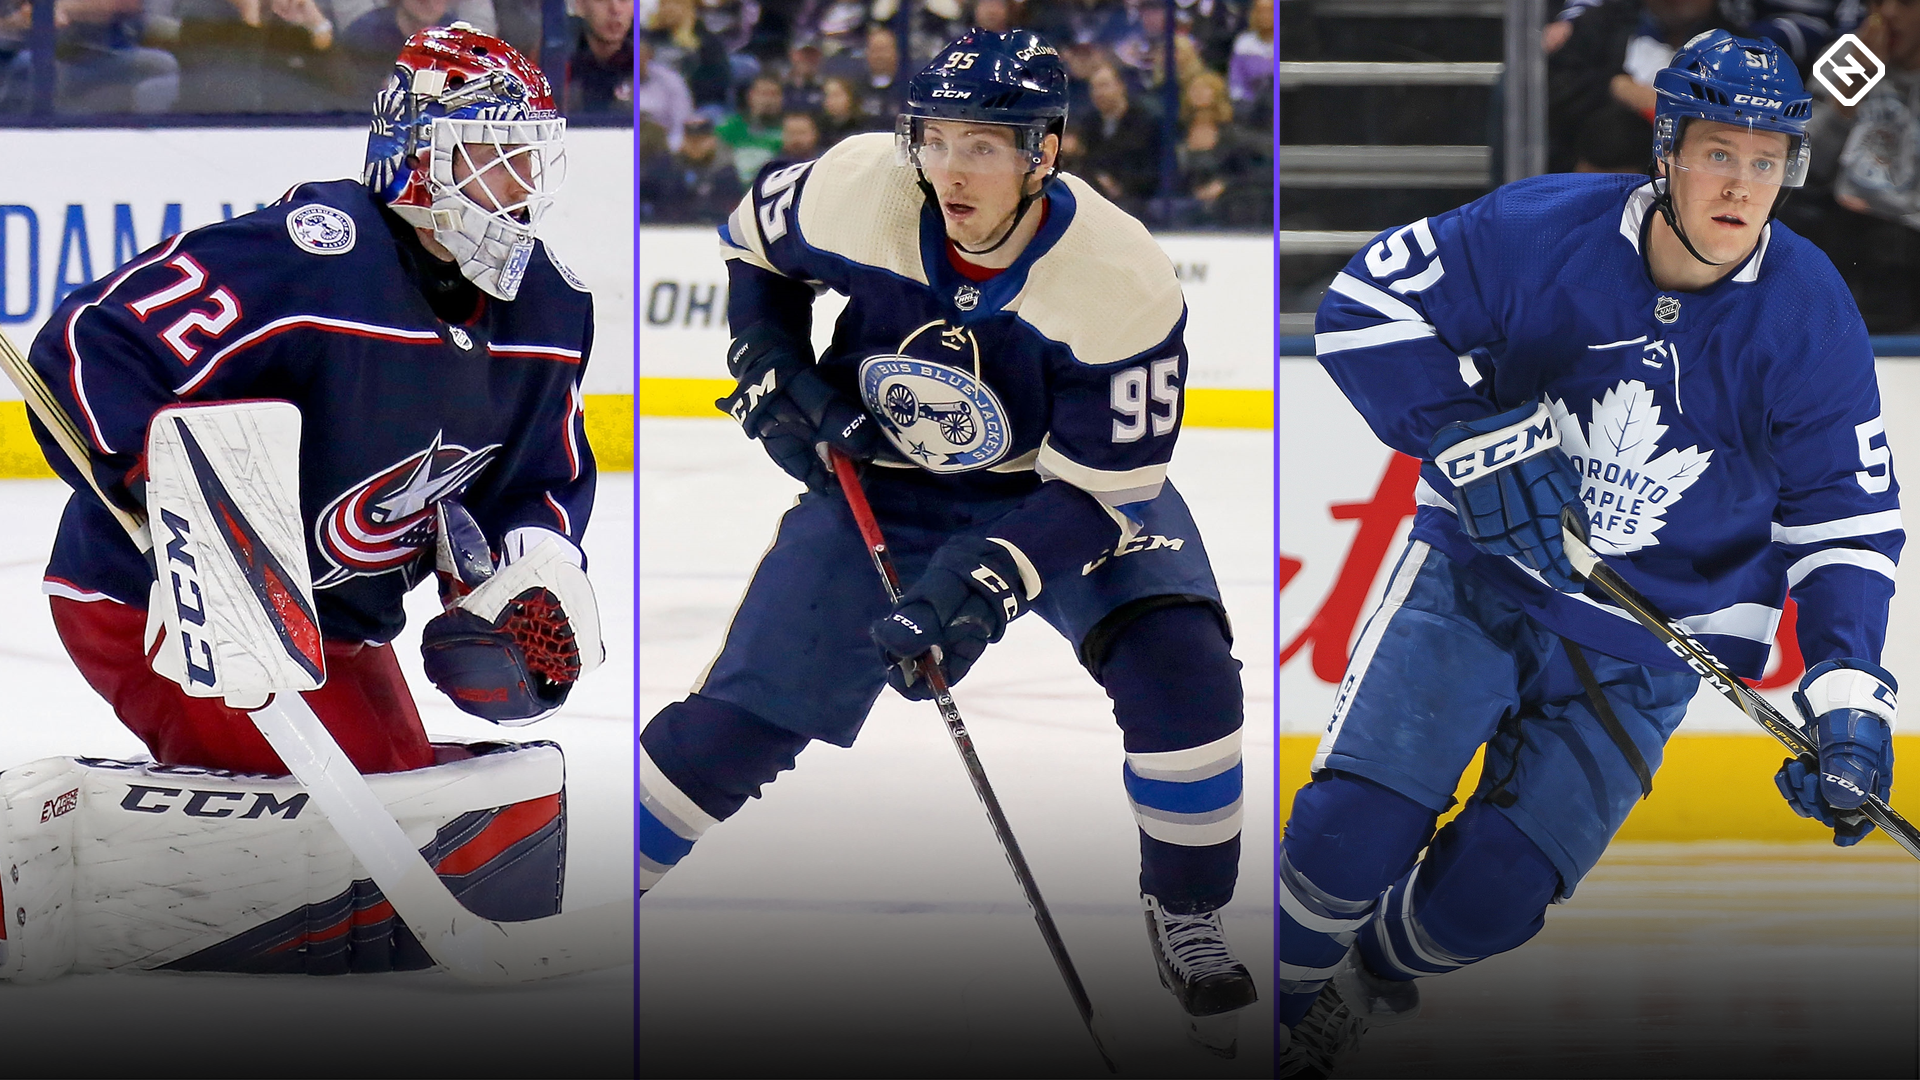 NHL free agency 2019: Bobrovsky, Duchene and the top unrestricted free agents by position